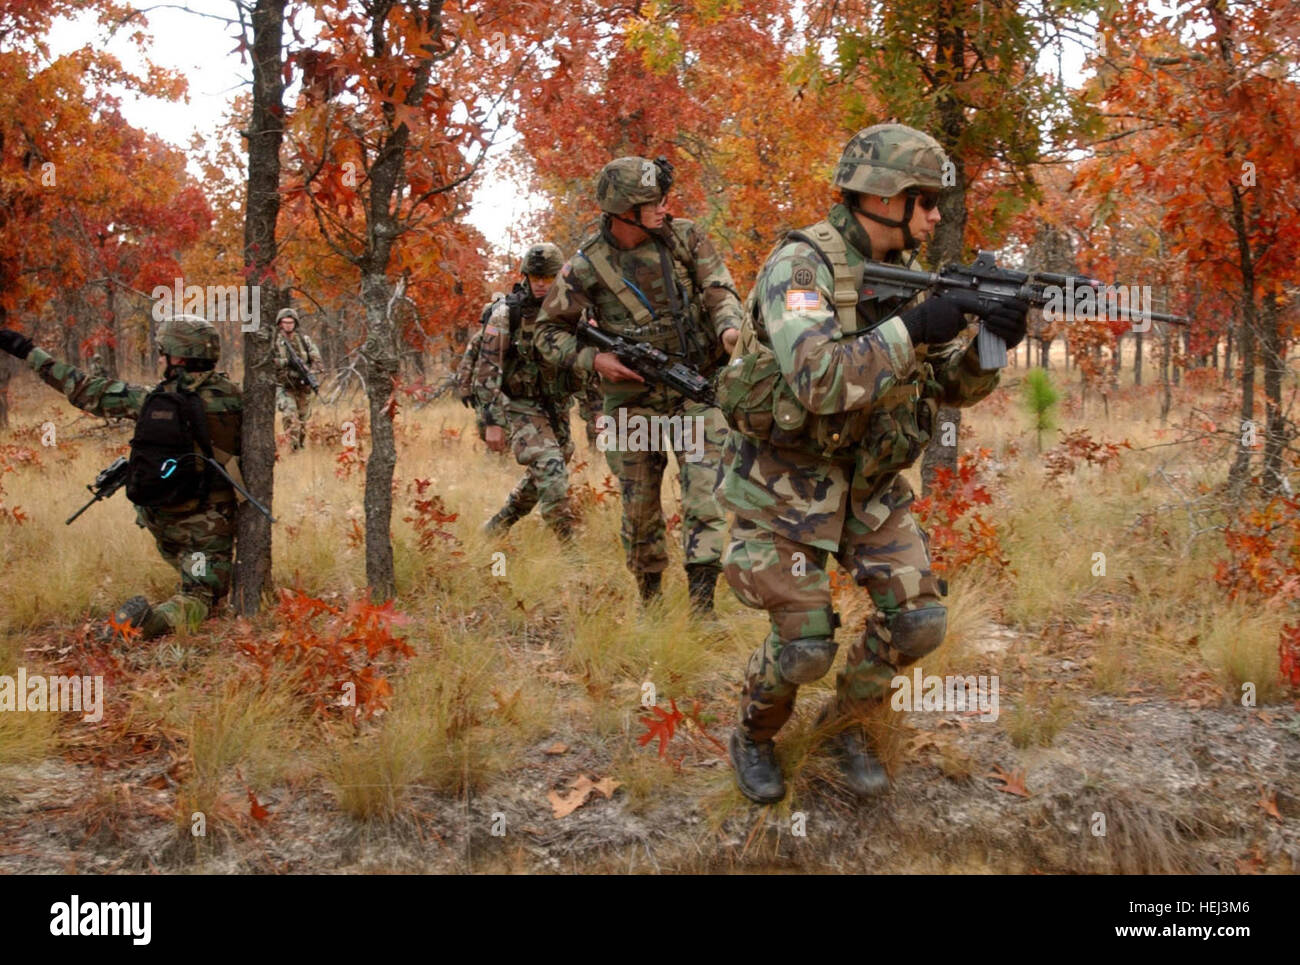 011205-A-5406-001 Paratroopers pull security as they cross a linear danger area on their way to assault an objective - Stock Image